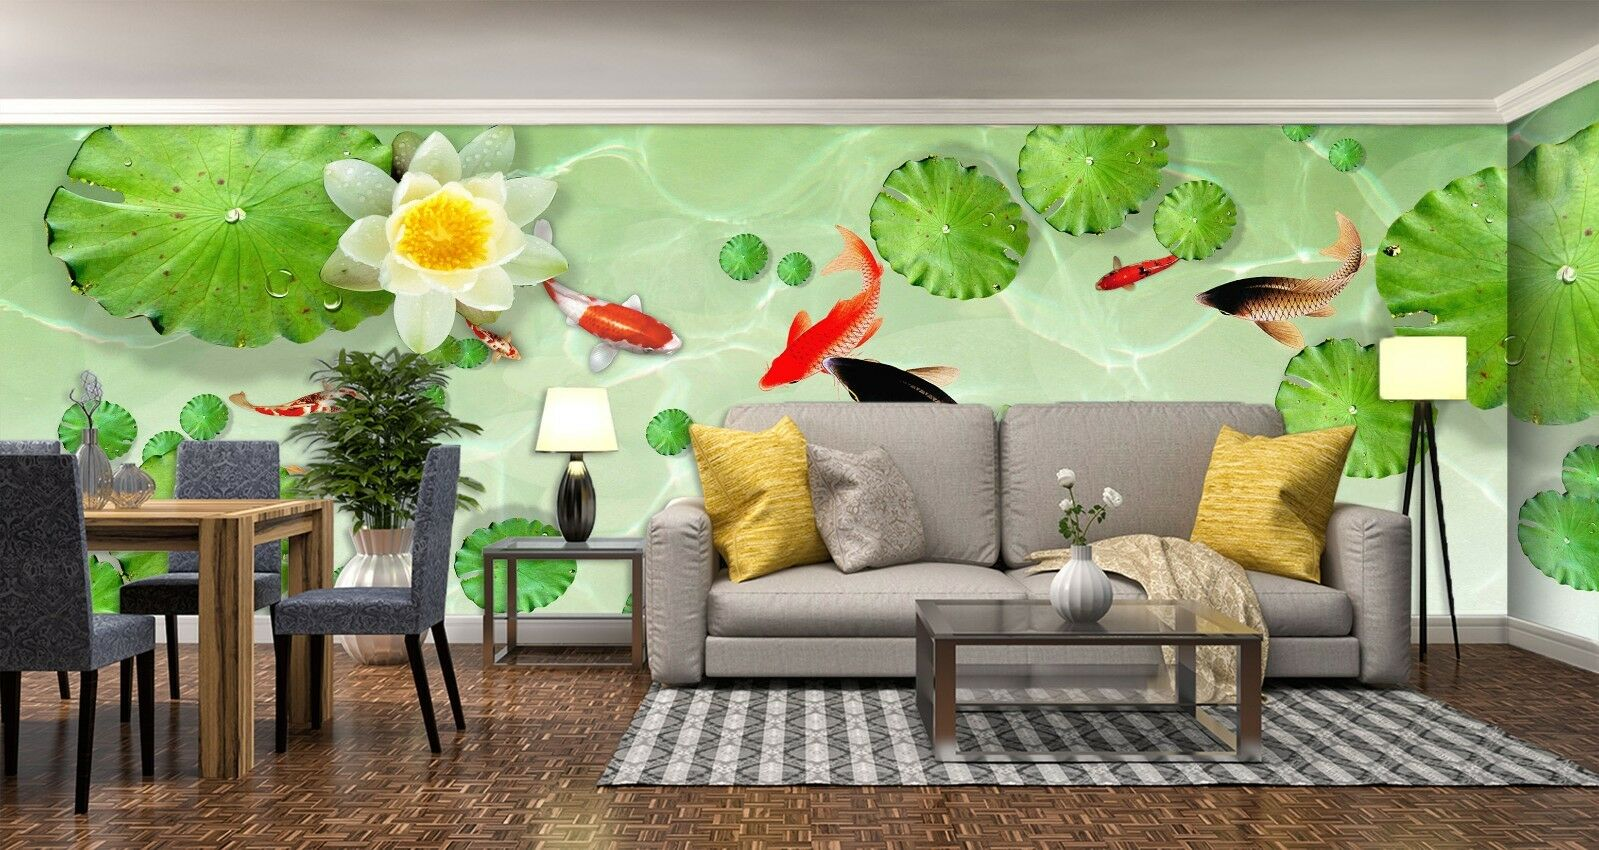 3D Koi Pond Lotus 7116 Wallpaper Mural Wall Print Wall Wallpaper Murals US Lemon